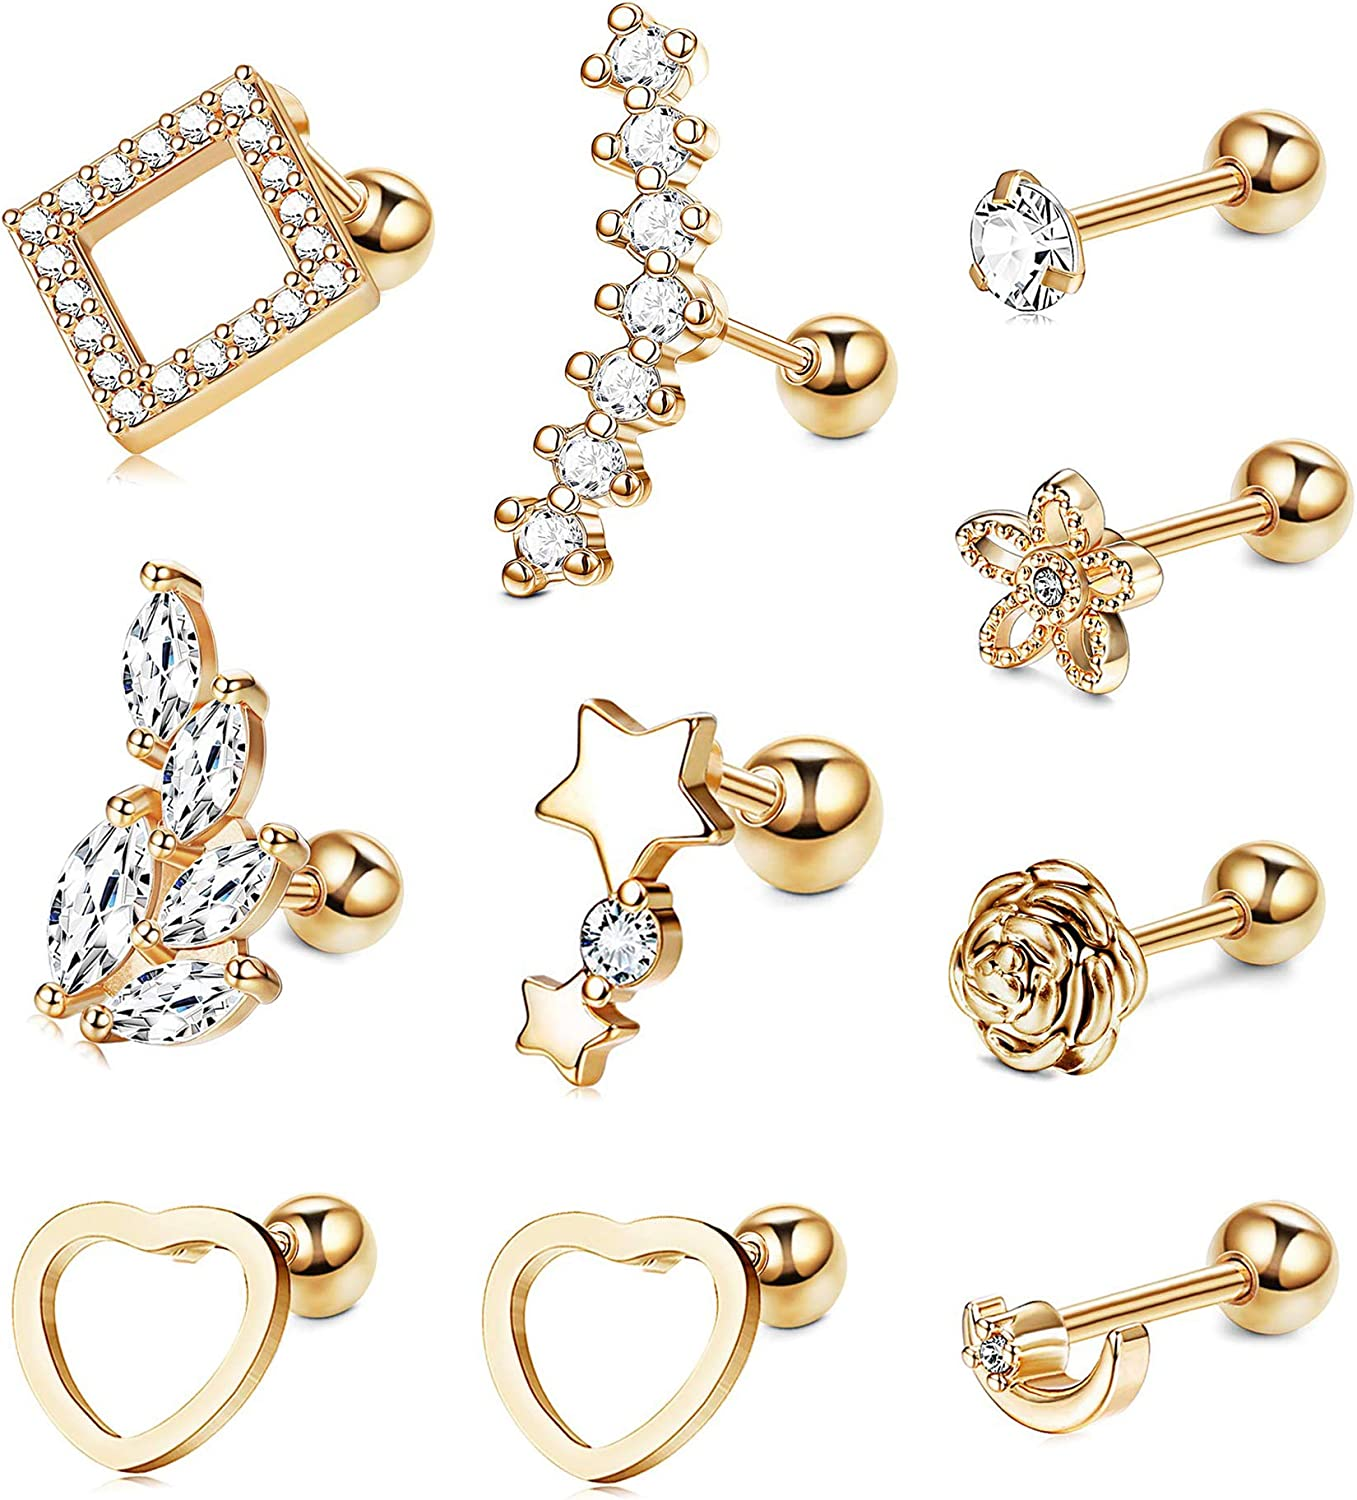 10 Pairs 16g Ear Cartilage Helix Surgical Stainless Steel Cubic Zirconia Stud Cartilage Earrings Huggie Screw Backs Ear Tragus Auricle Cute Love Heart Flower Barbell Piercing Jewelry Set 4mm Gifts